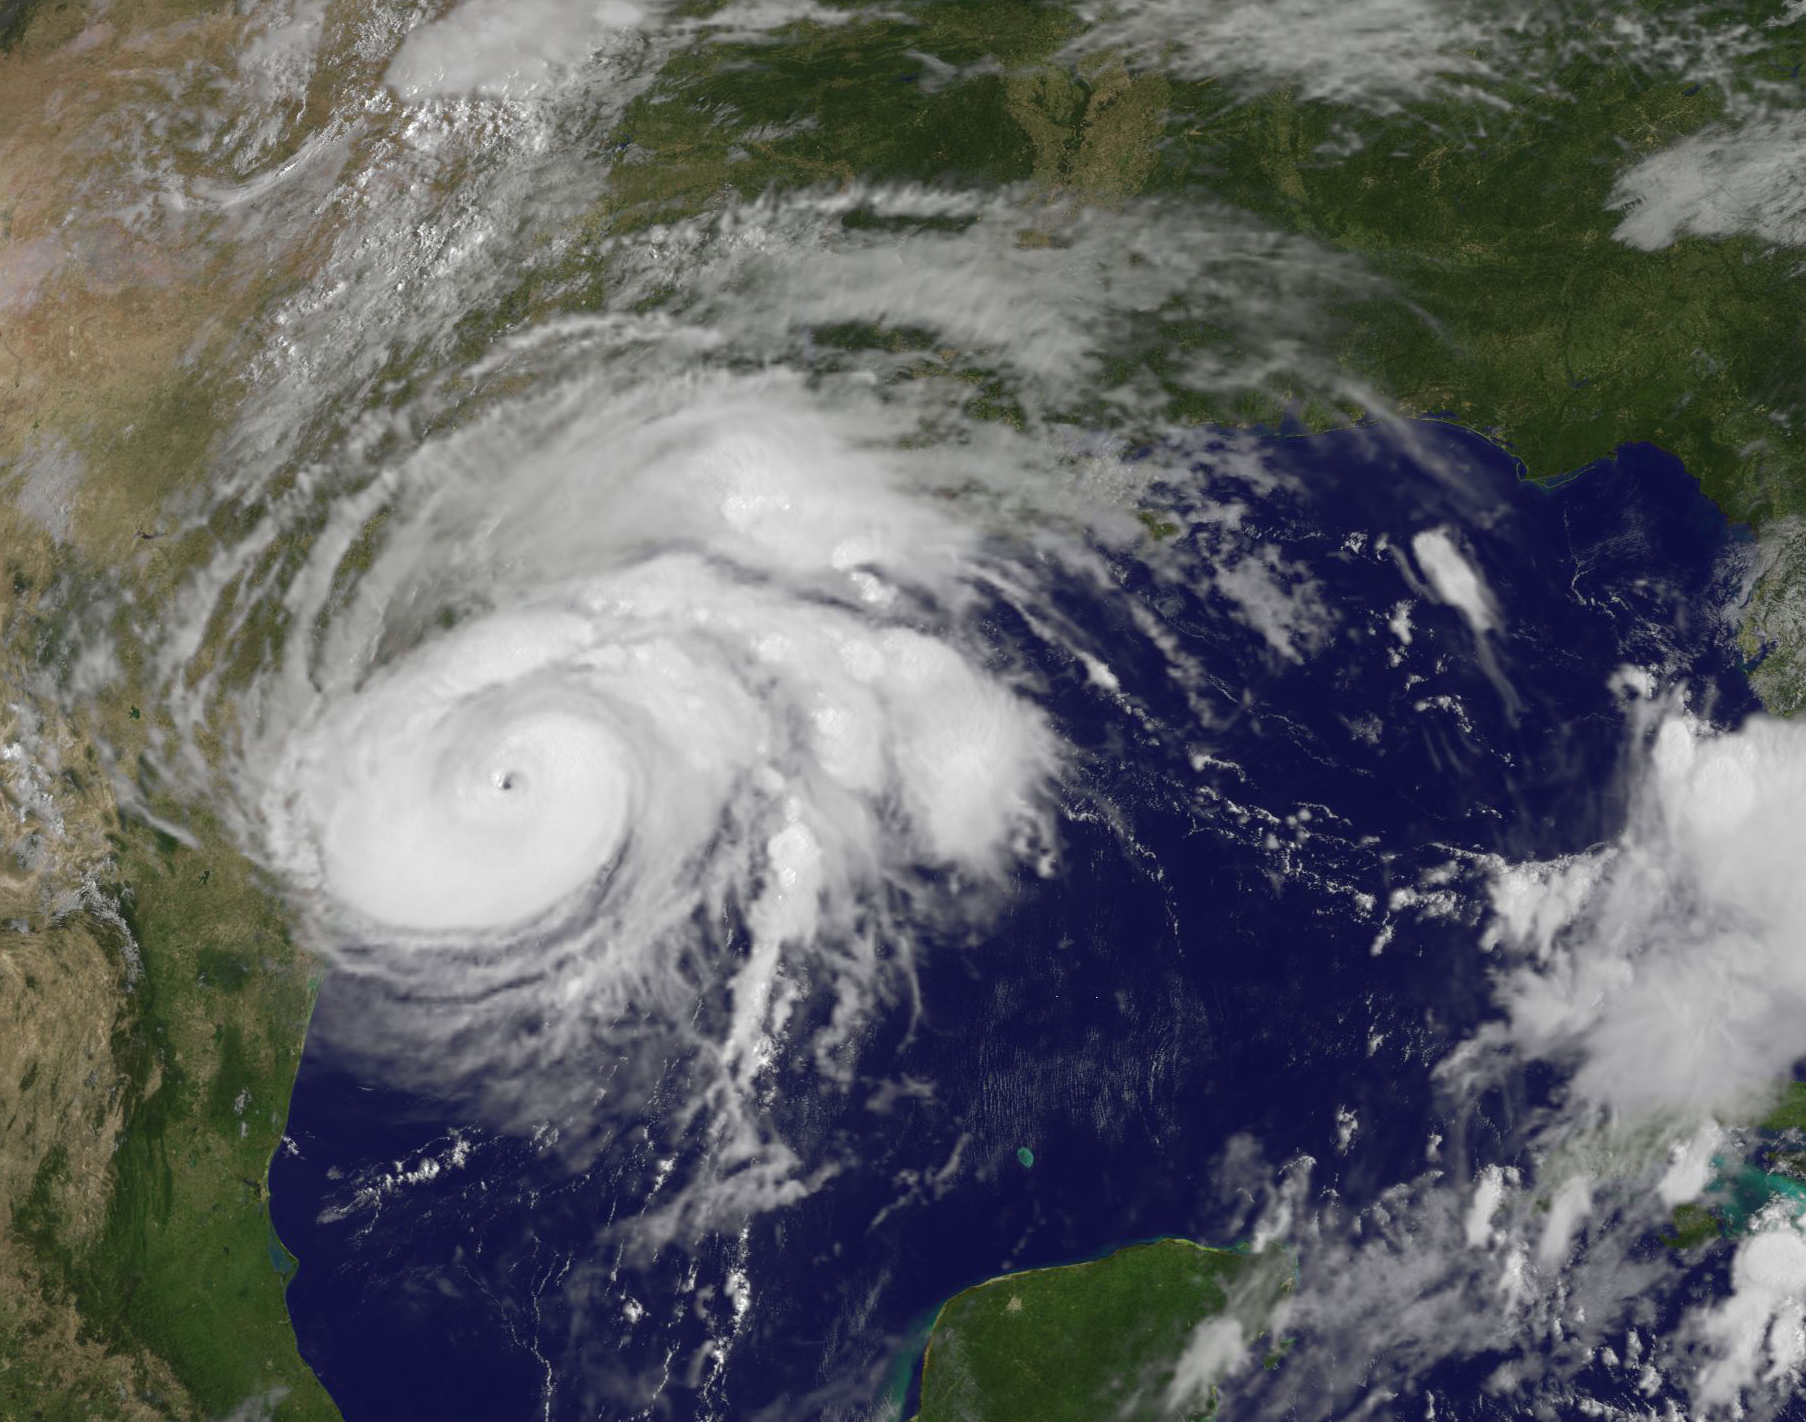 In this NOAA handout image, NOAA's GOES East satellite capture of Hurricane Harvey shows the storm's eye as the storm nears landfall on Aug. 25, 2017 in the southeastern coast of Texas.